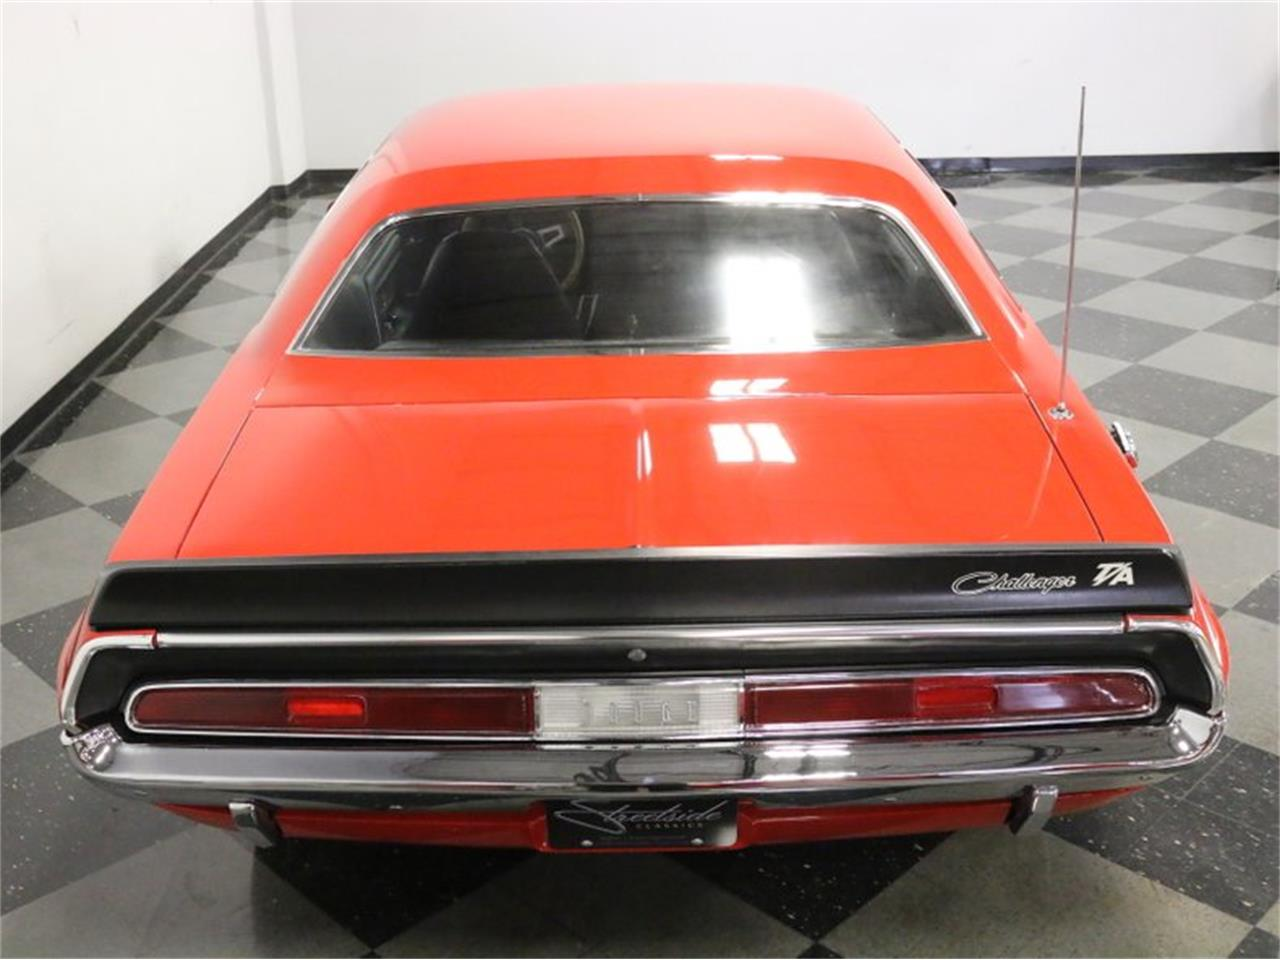 Large Picture of '70 Challenger T/A located in Texas - $69,995.00 Offered by Streetside Classics - Dallas / Fort Worth - N7CT